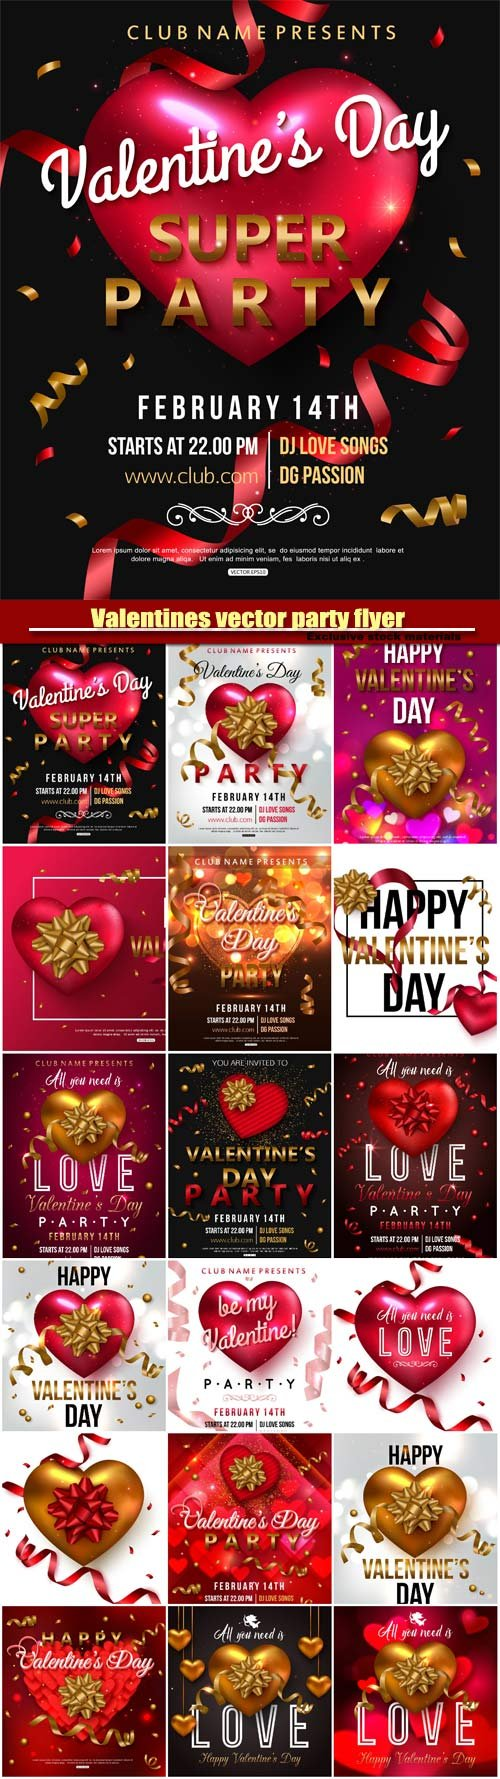 Valentines vector party flyer design with red heart bow ribbon